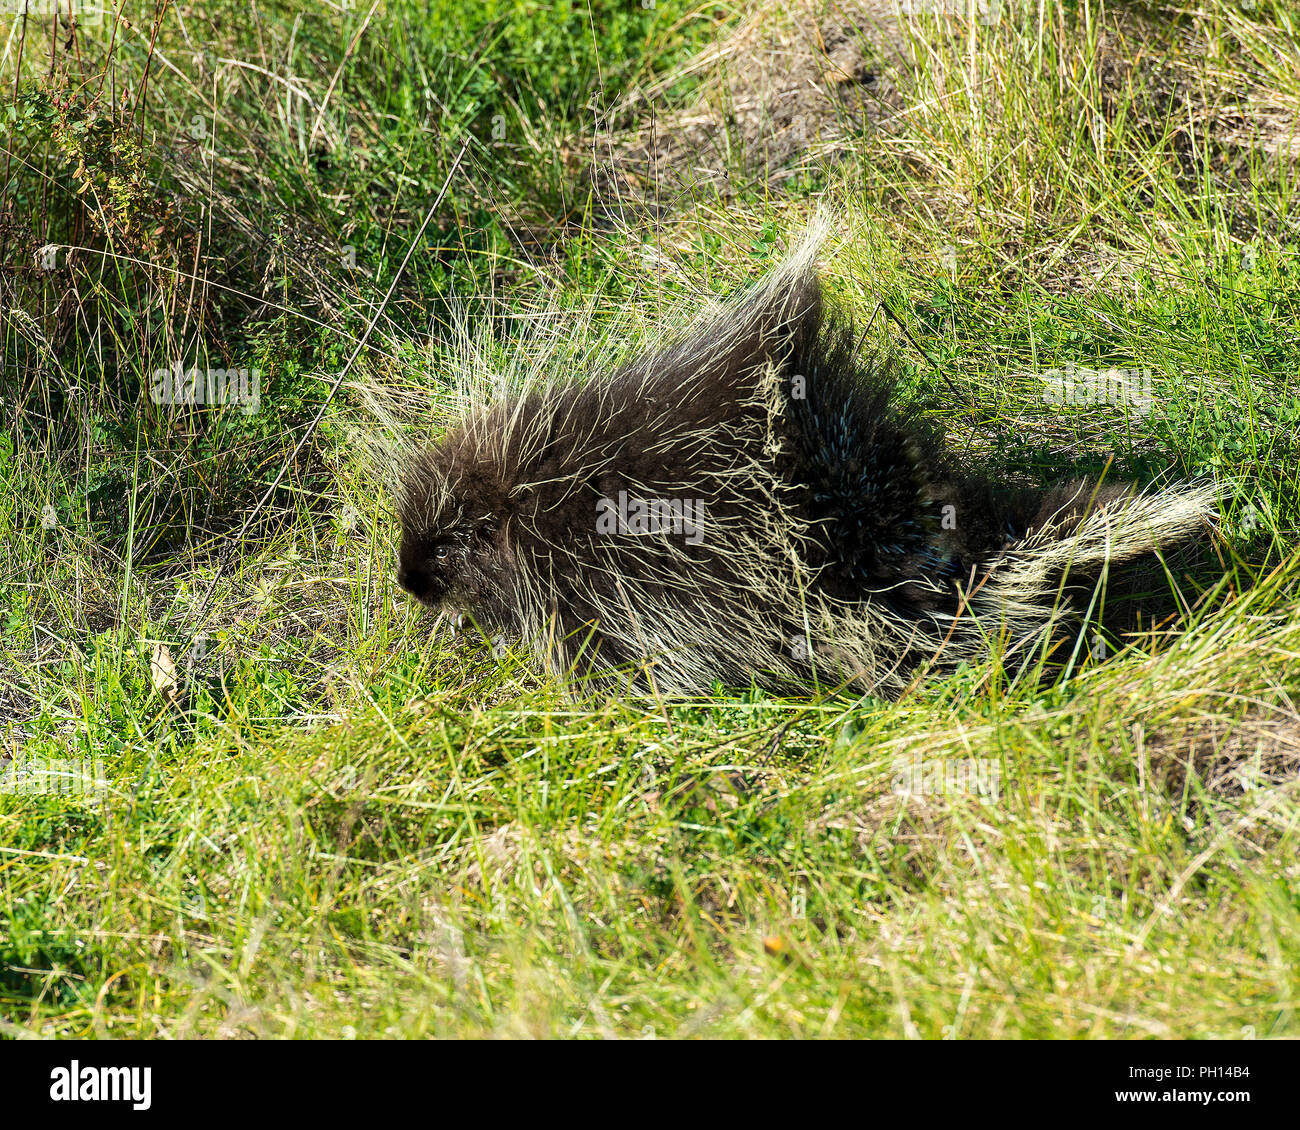 Porcupine in its environment. - Stock Image